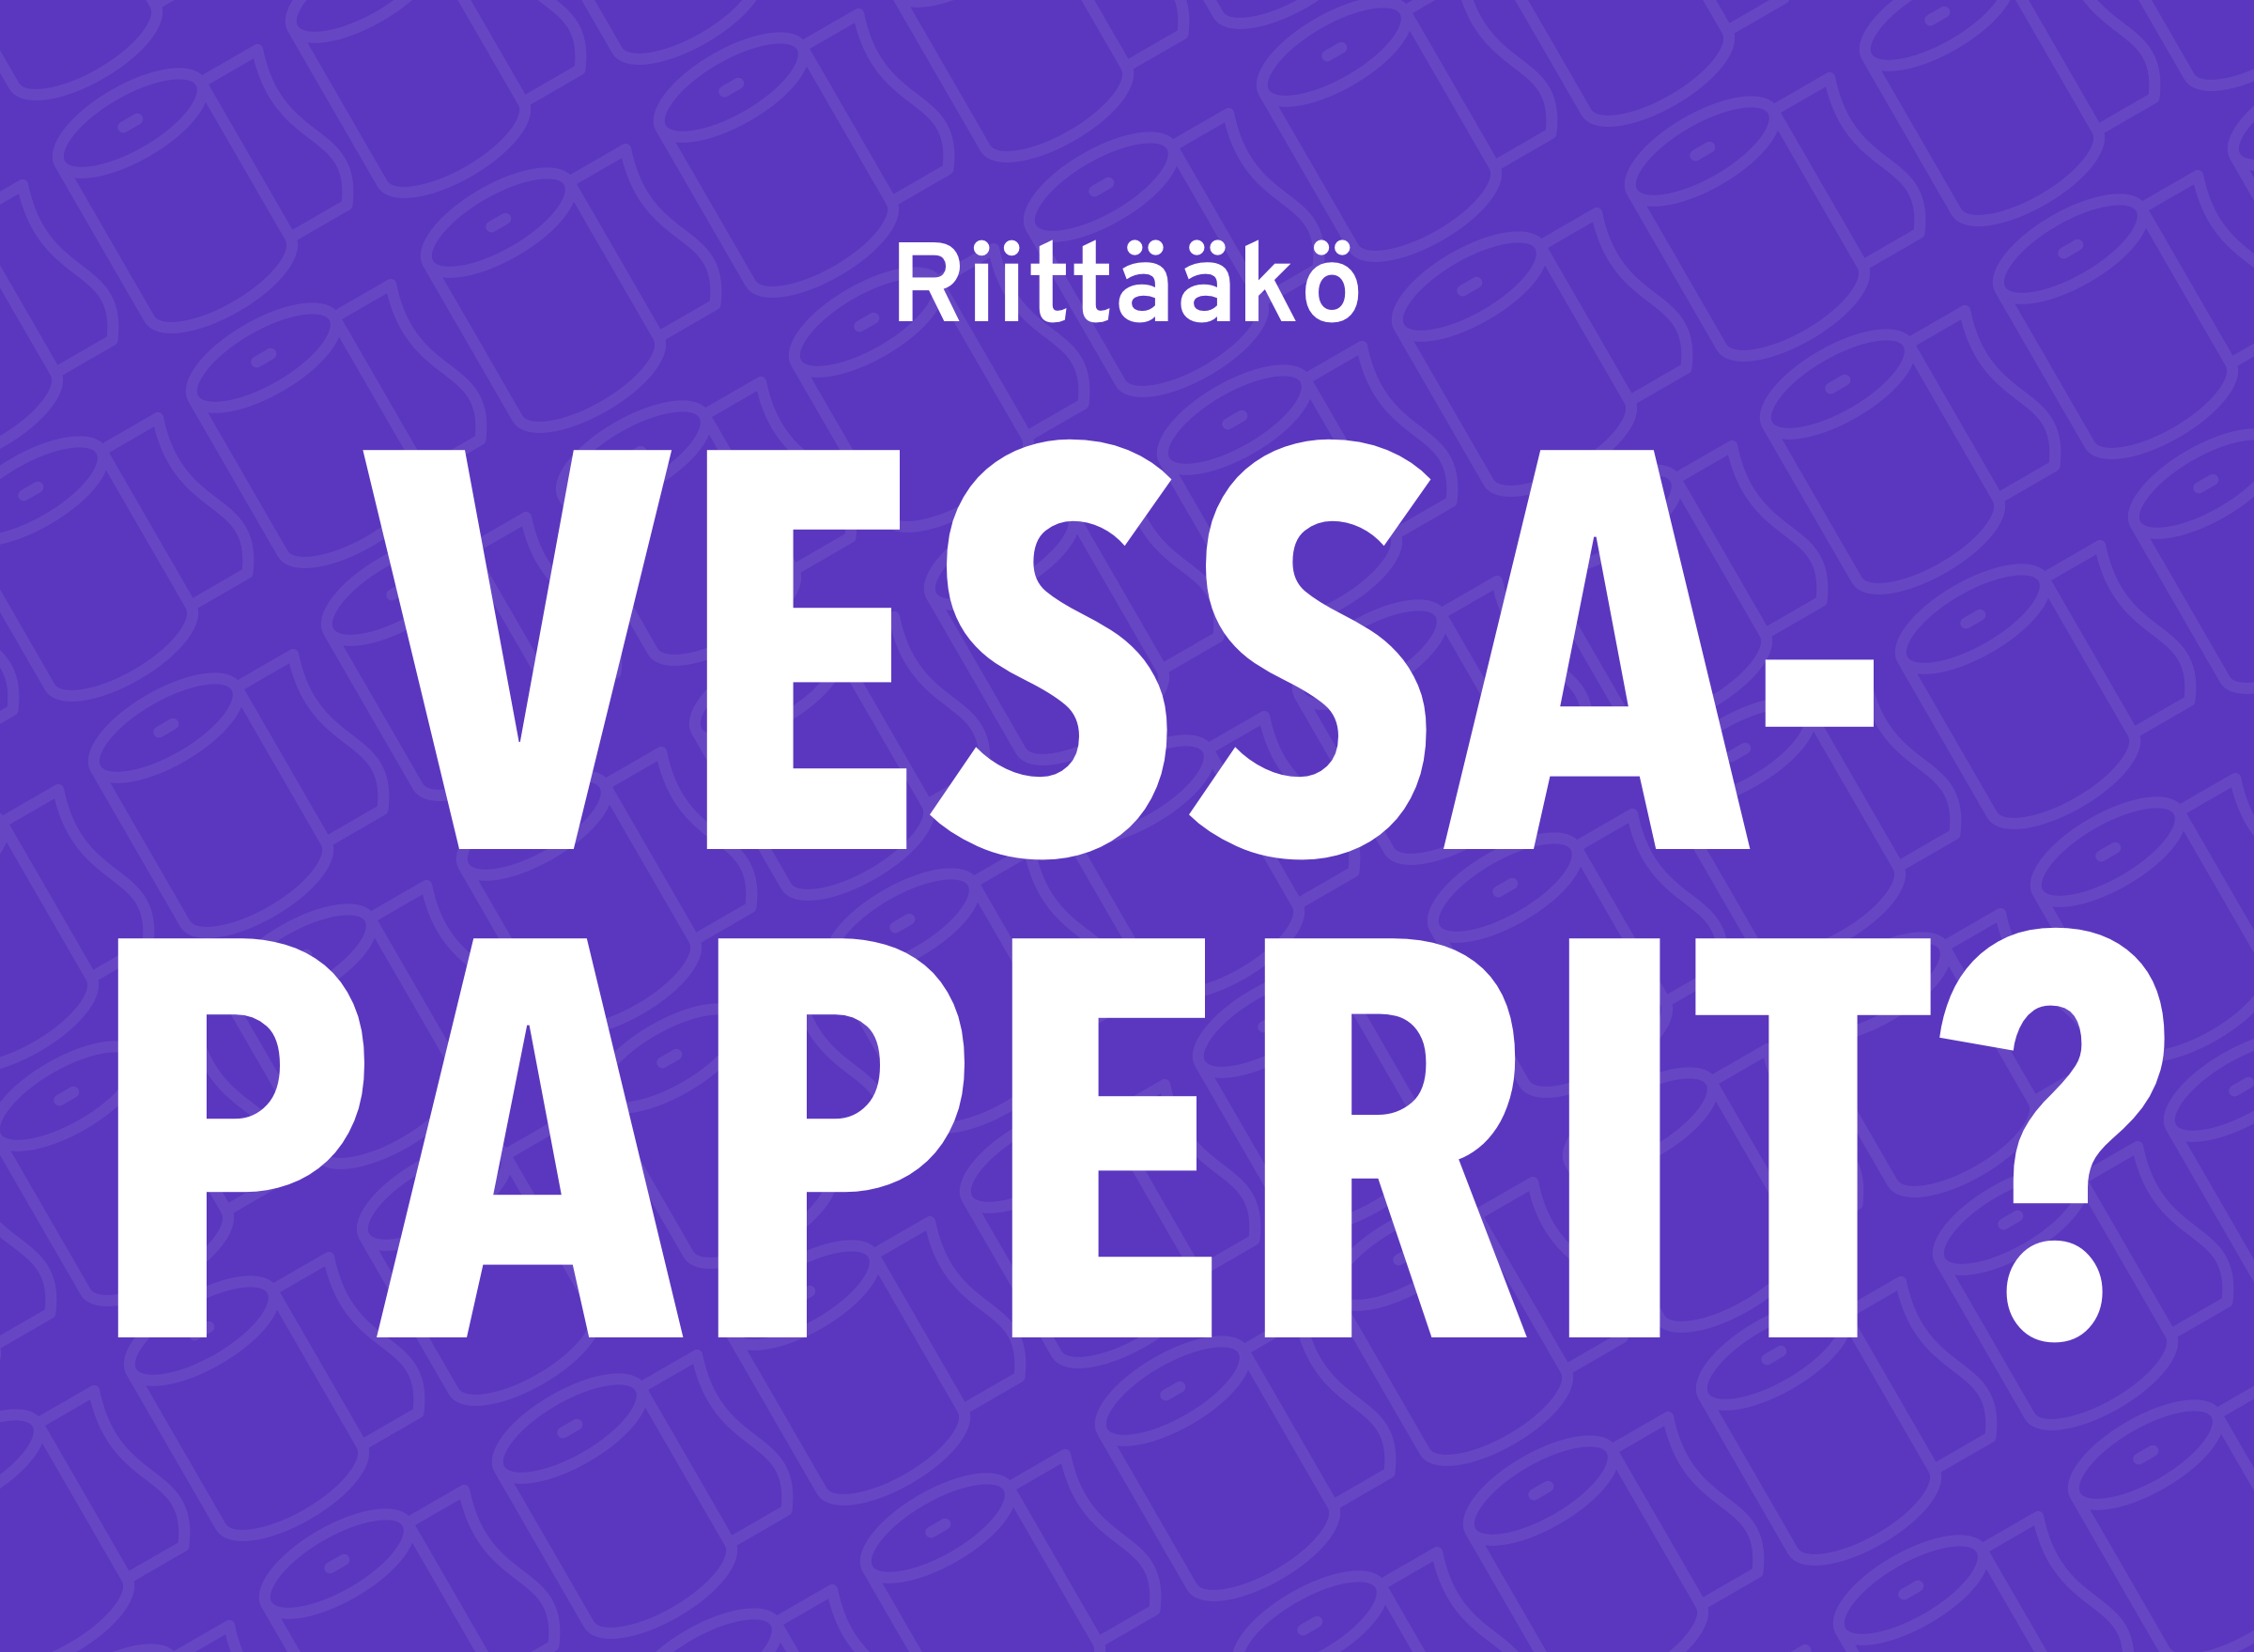 """Meme with text in finnish: """"Do you have enough toilet paper?"""""""